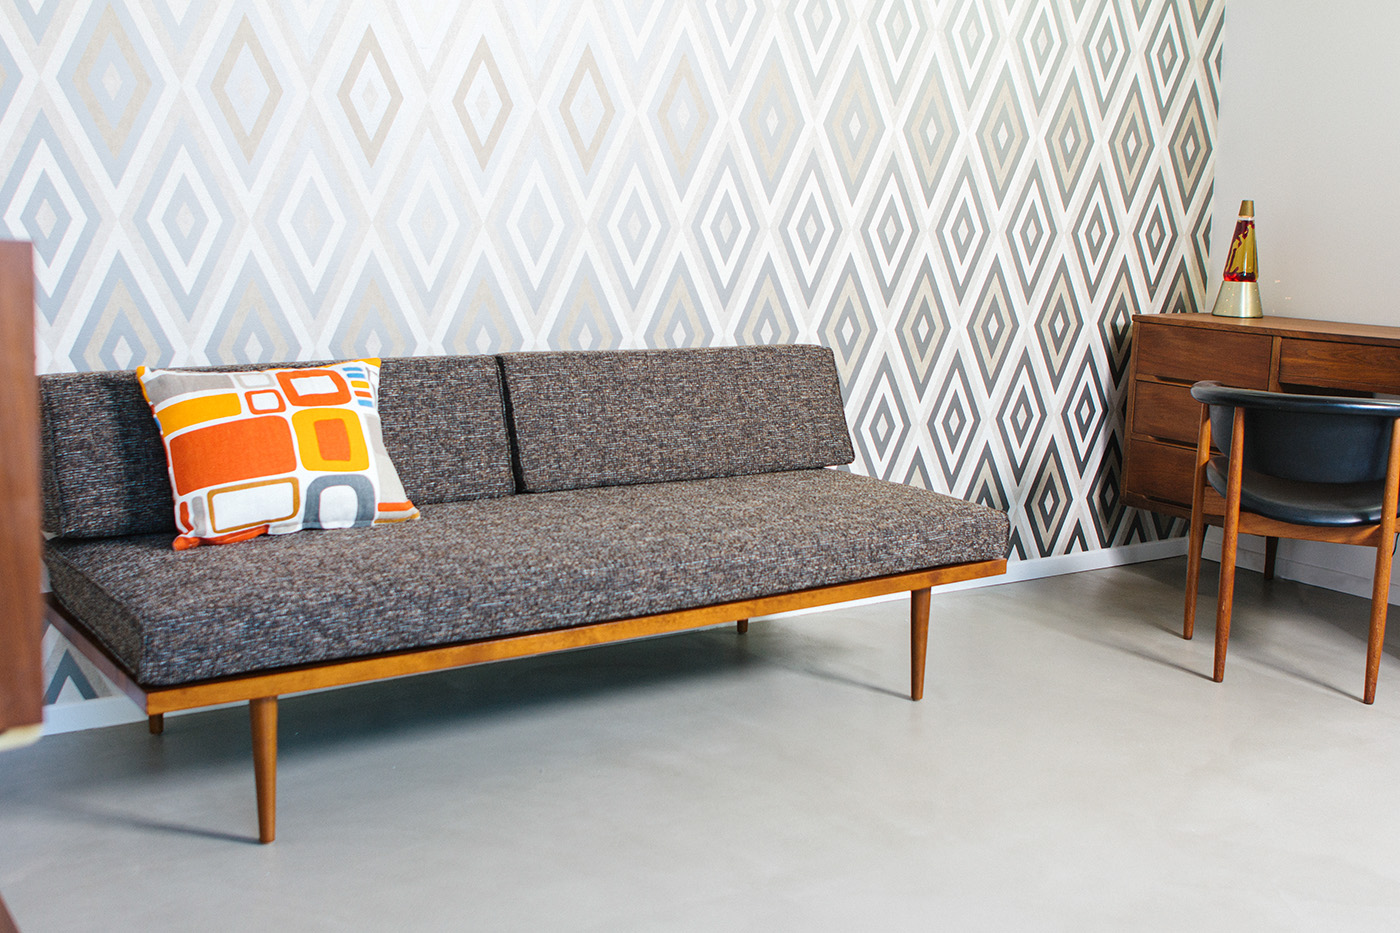 Phenomenal The Classic Daybed Casara Modern Alphanode Cool Chair Designs And Ideas Alphanodeonline